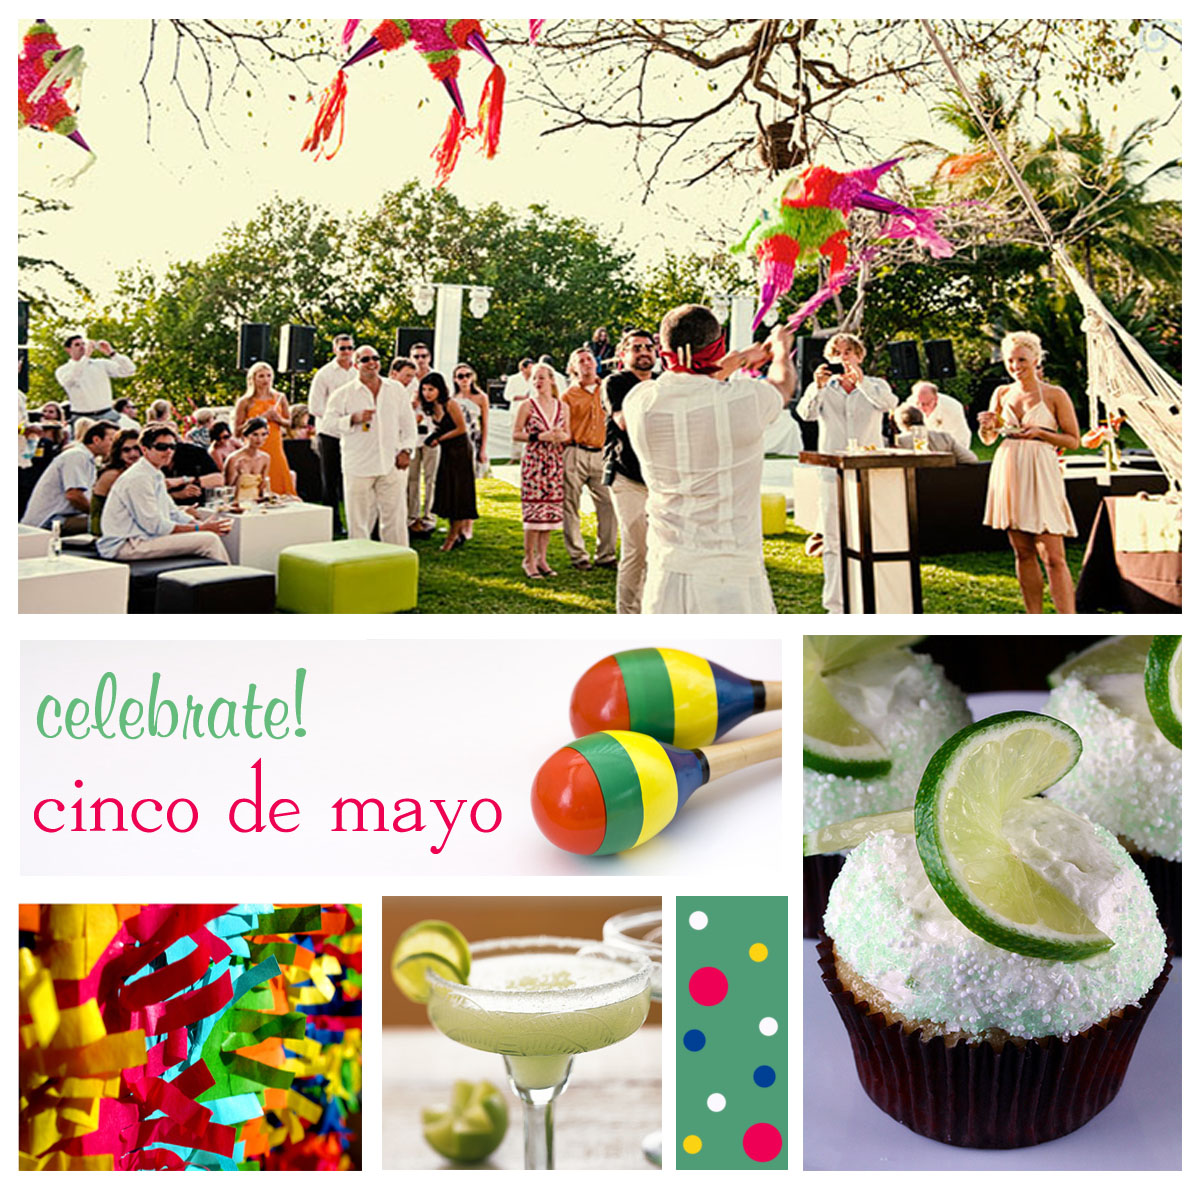 The Gofg Nyc Cinco De Mayo And Derby Day Party Guide 2013